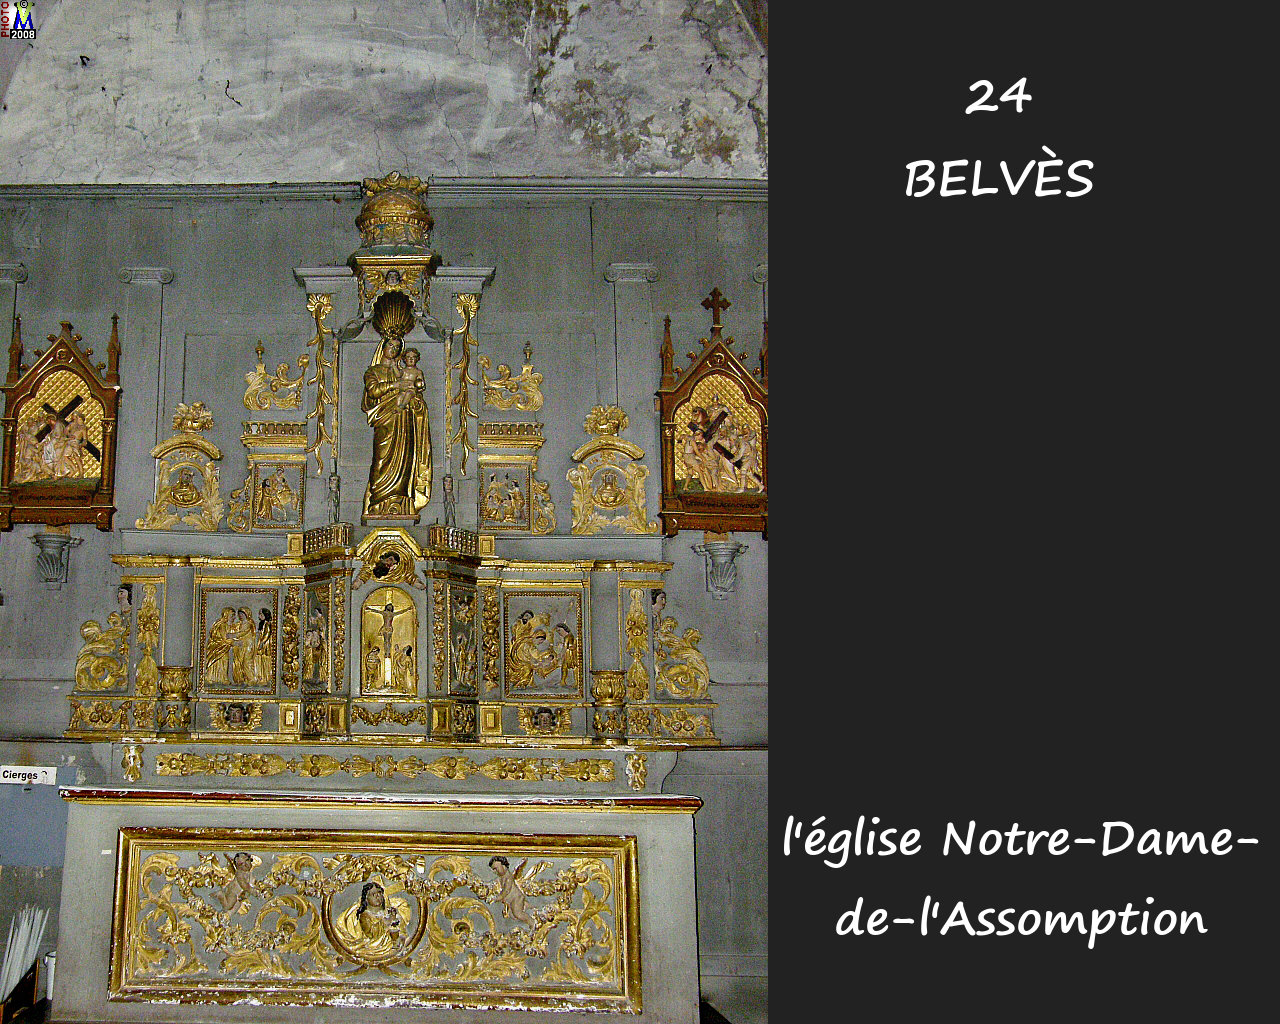 24BELVES_eglise_210.jpg